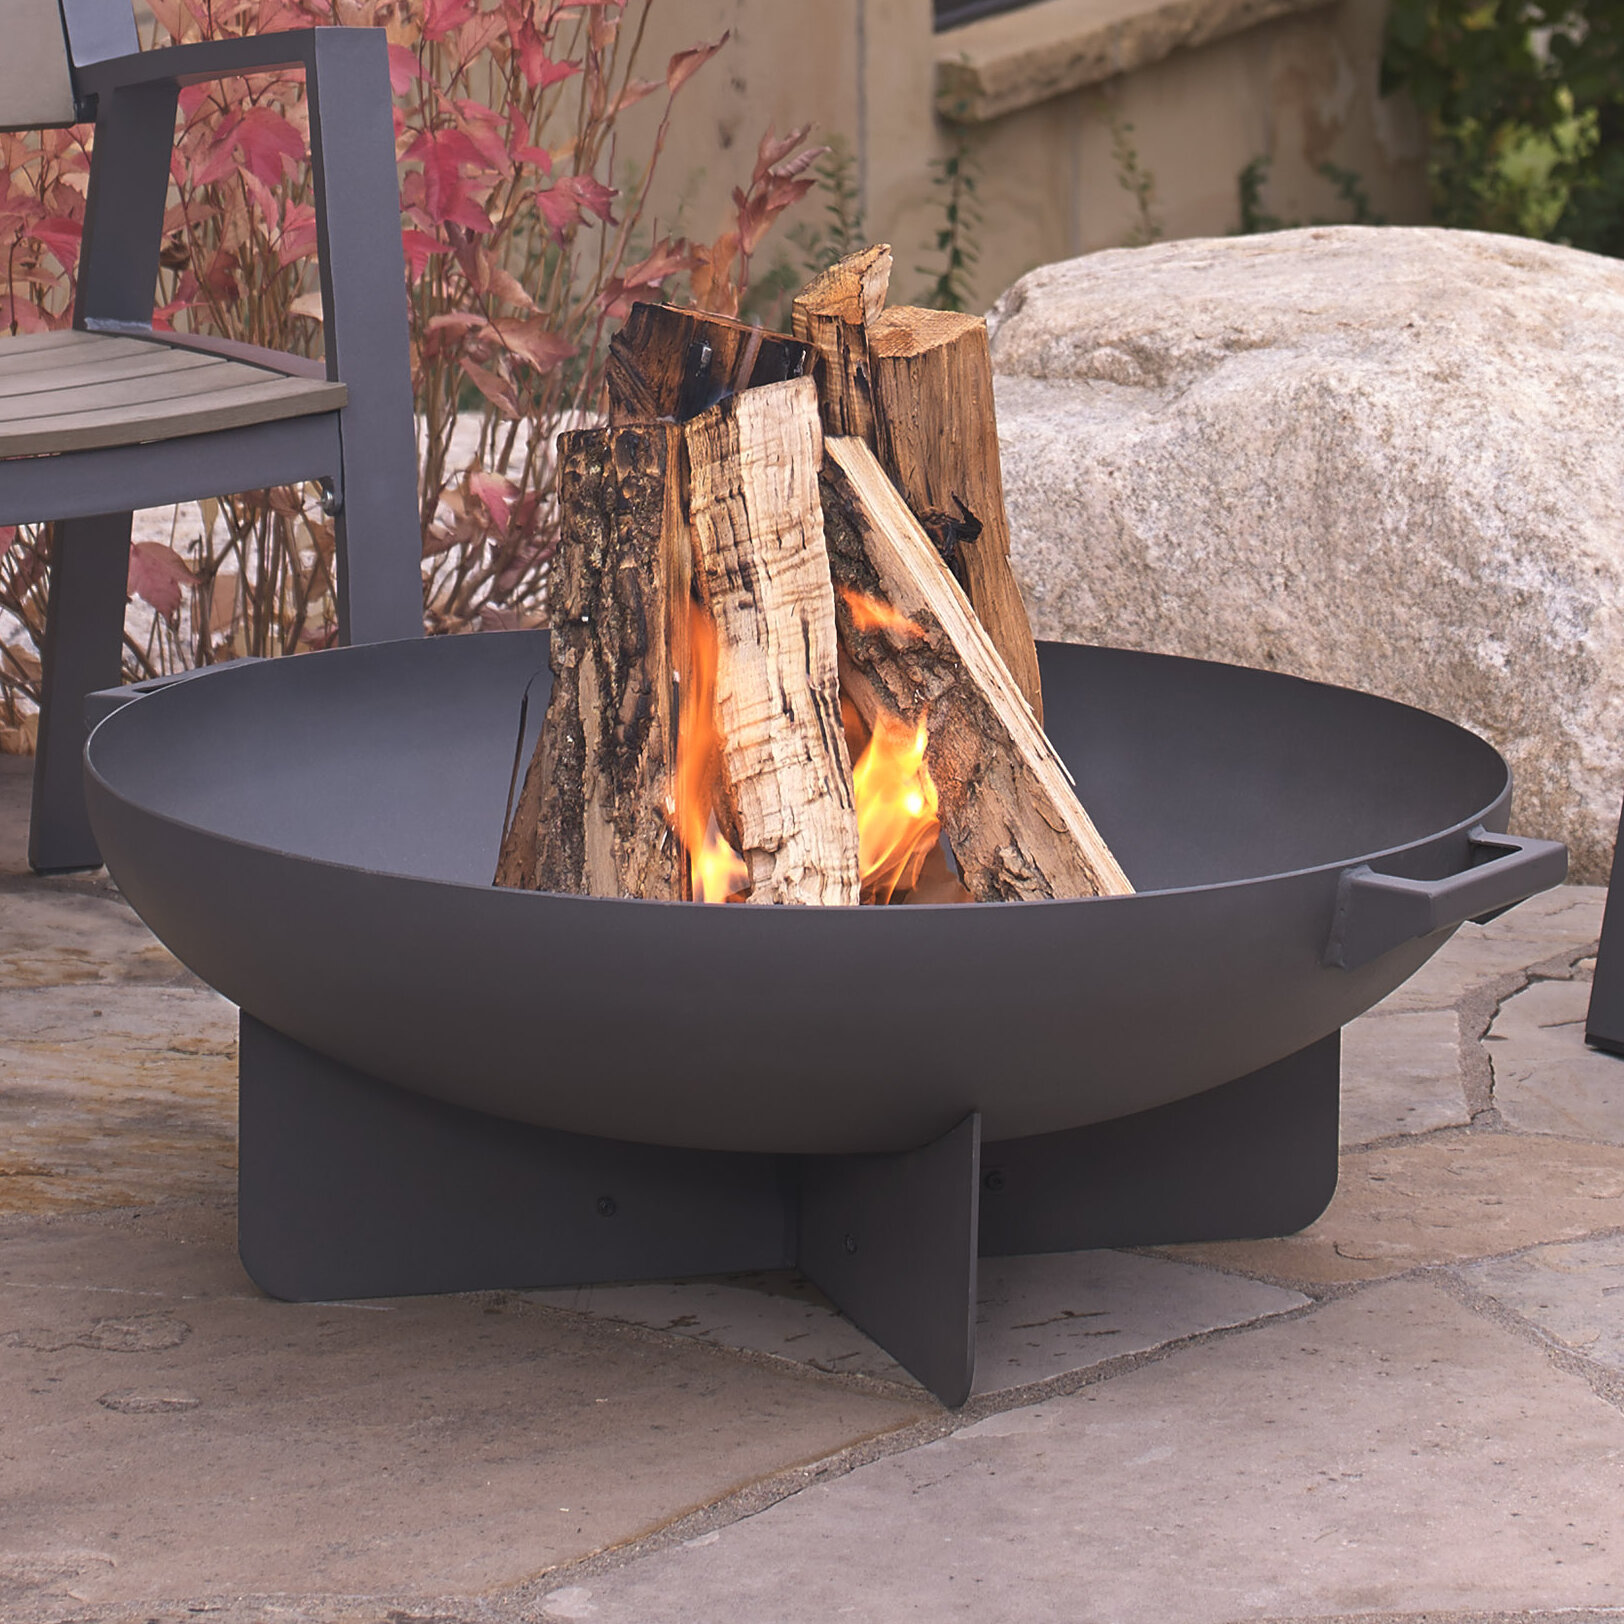 Real Flame Anson Steel Wood Burning Fire Pit Reviews Wayfair